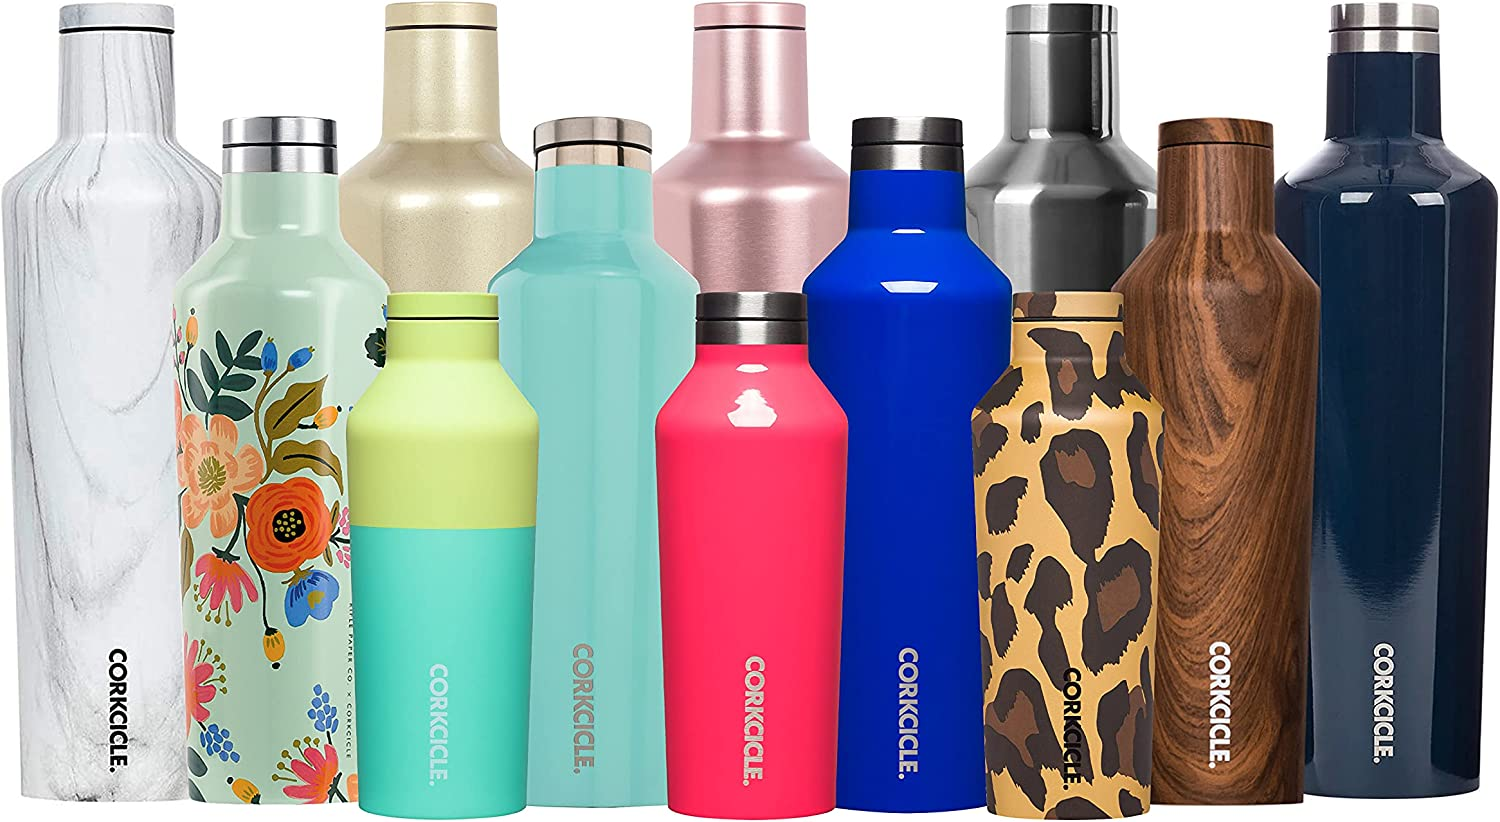 Corkcicle Canteen - Water Tulsa Mall Bottle Colorado Springs Mall St Insulated Thermos Triple